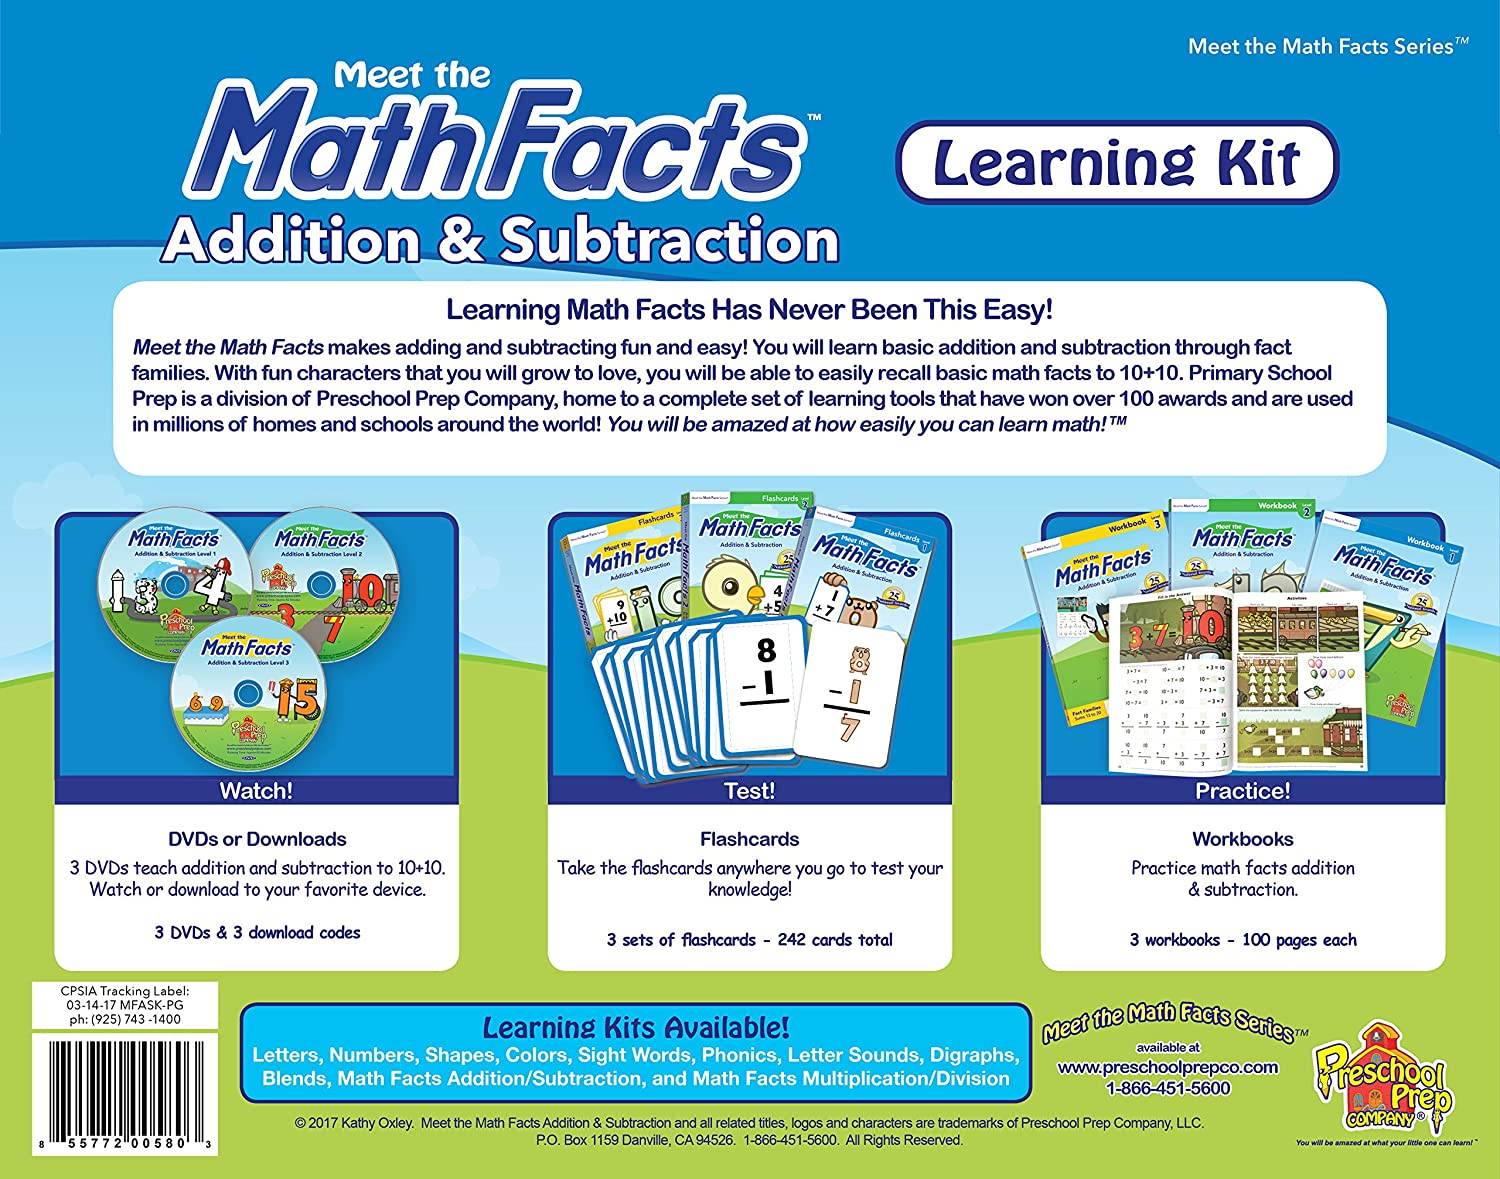 Amazon.com: Meet the Math Facts Addition & Subtraction Learning Kit ...